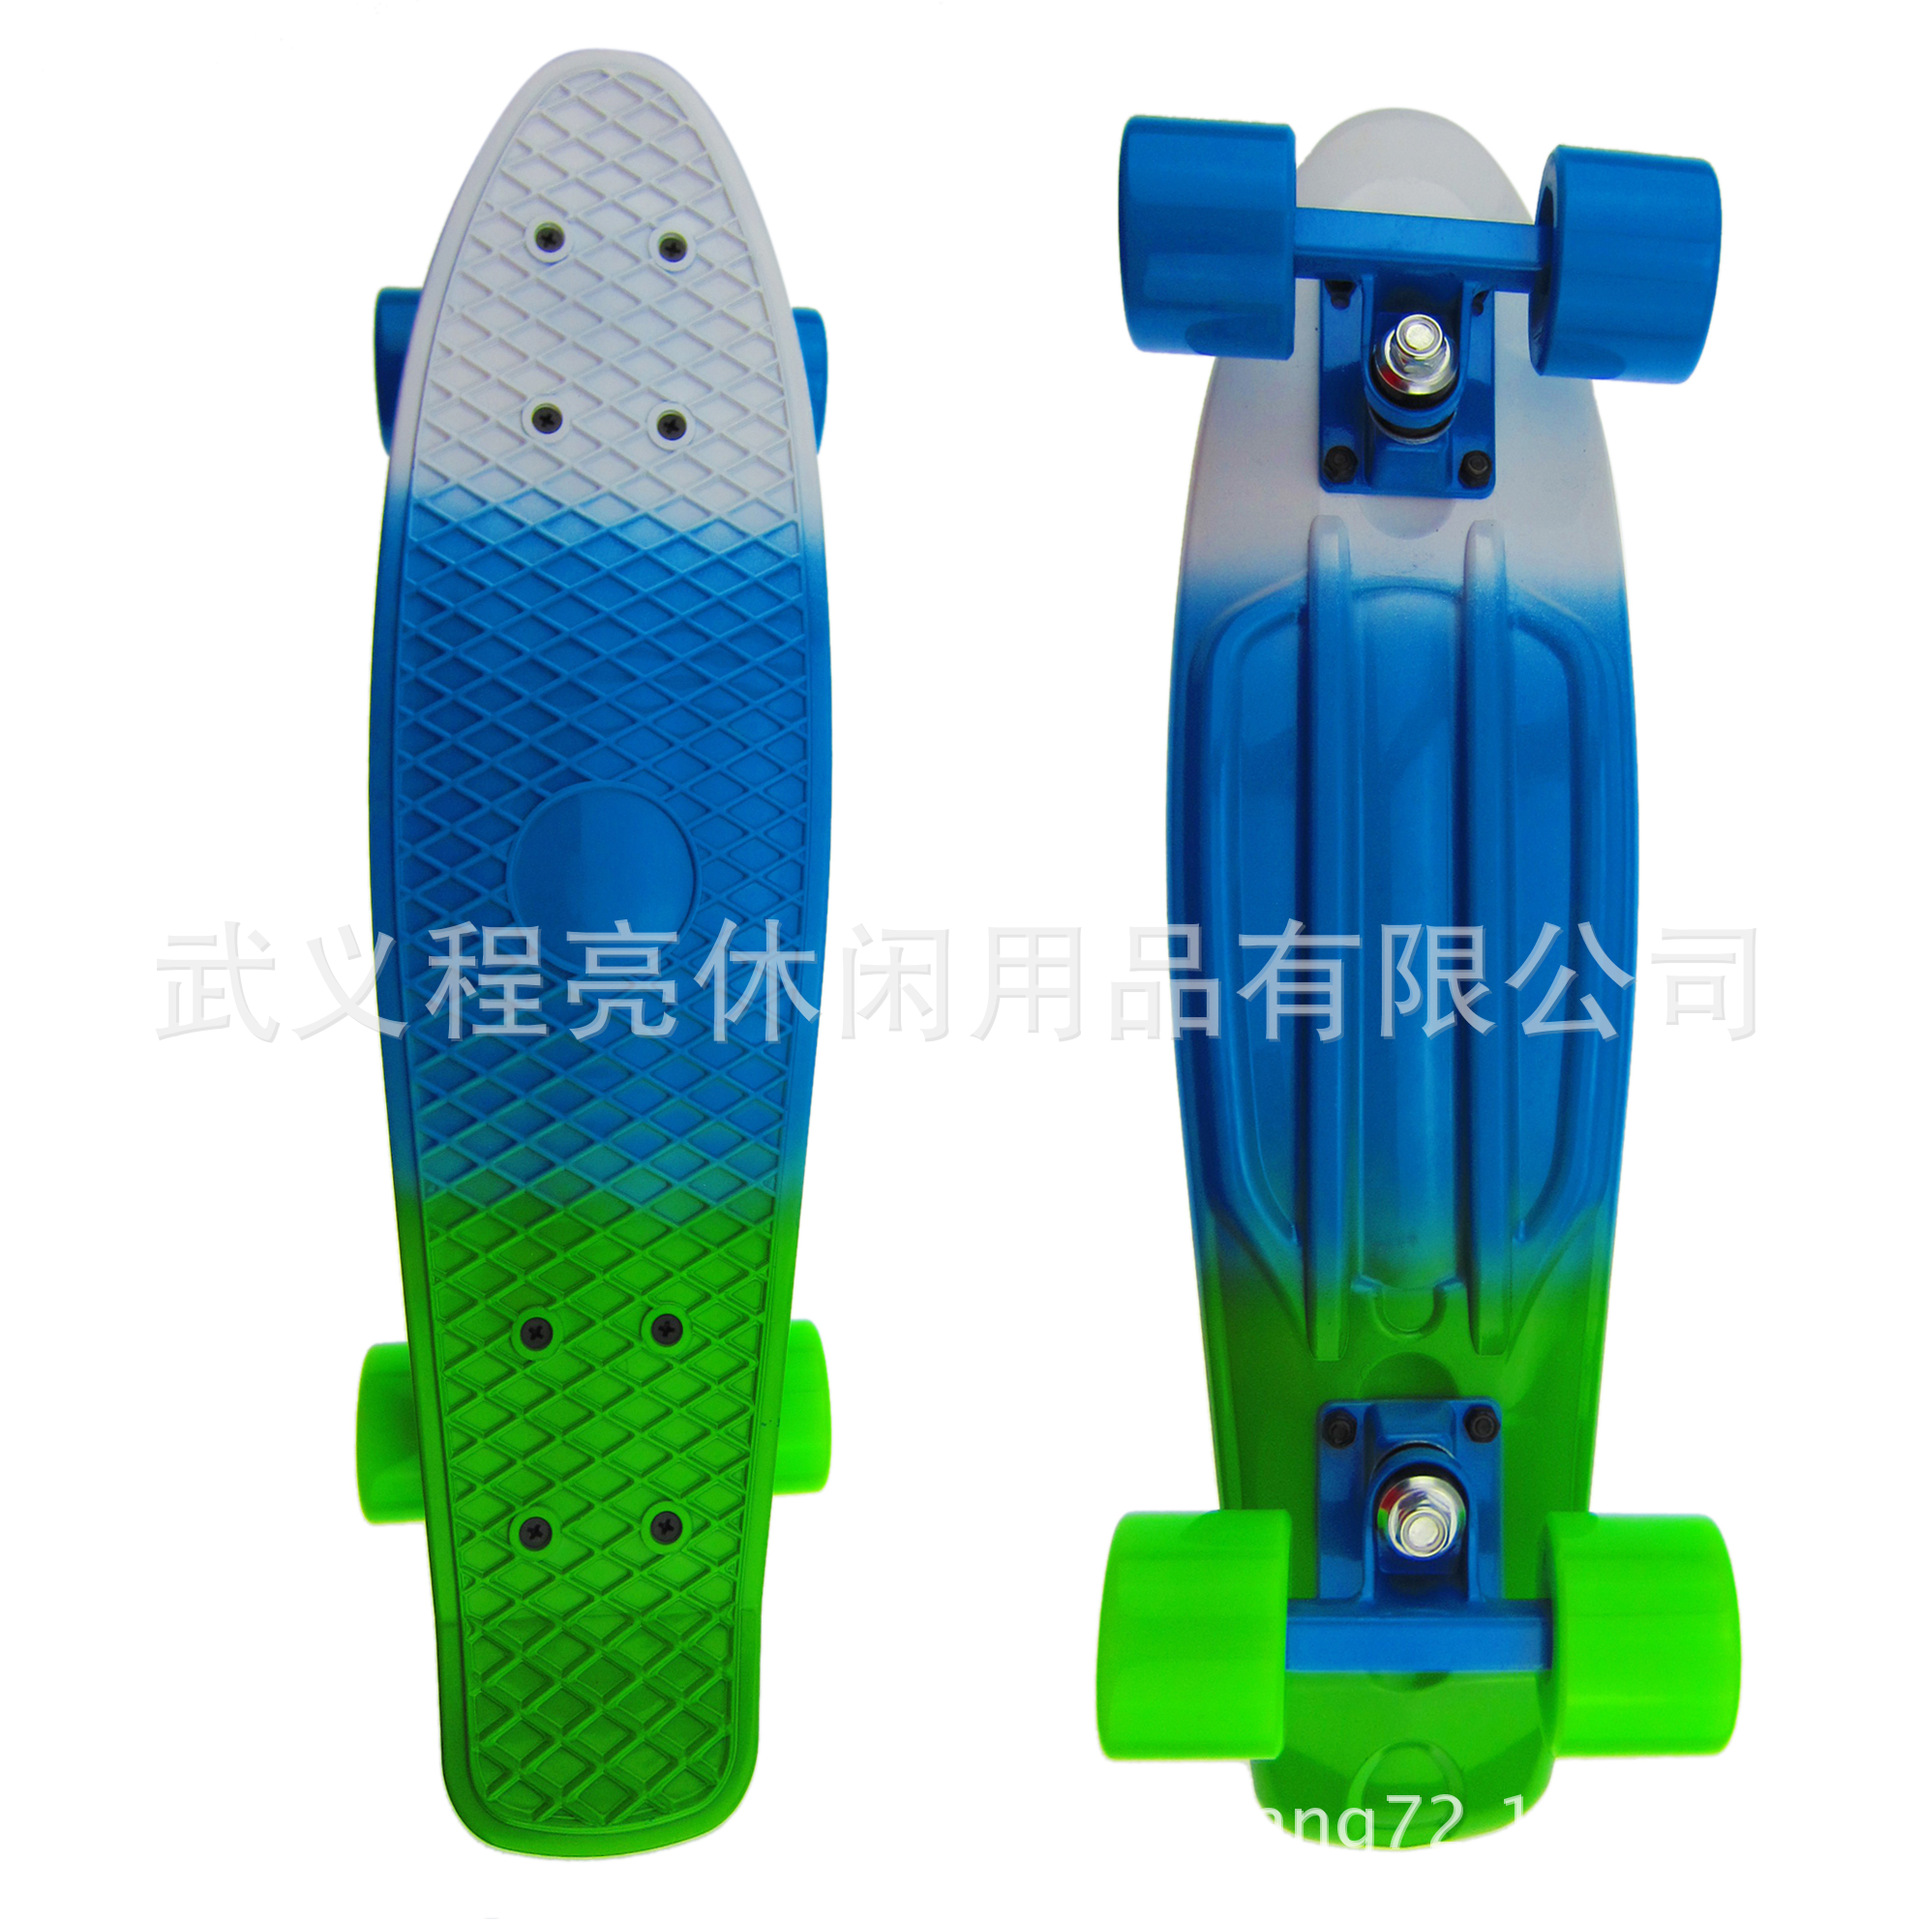 Manufacturers Direct Selling Four Wheel Skateboard Rainbow Three-Color Single Rocker Banana Board Adult Brand New PP Plastic